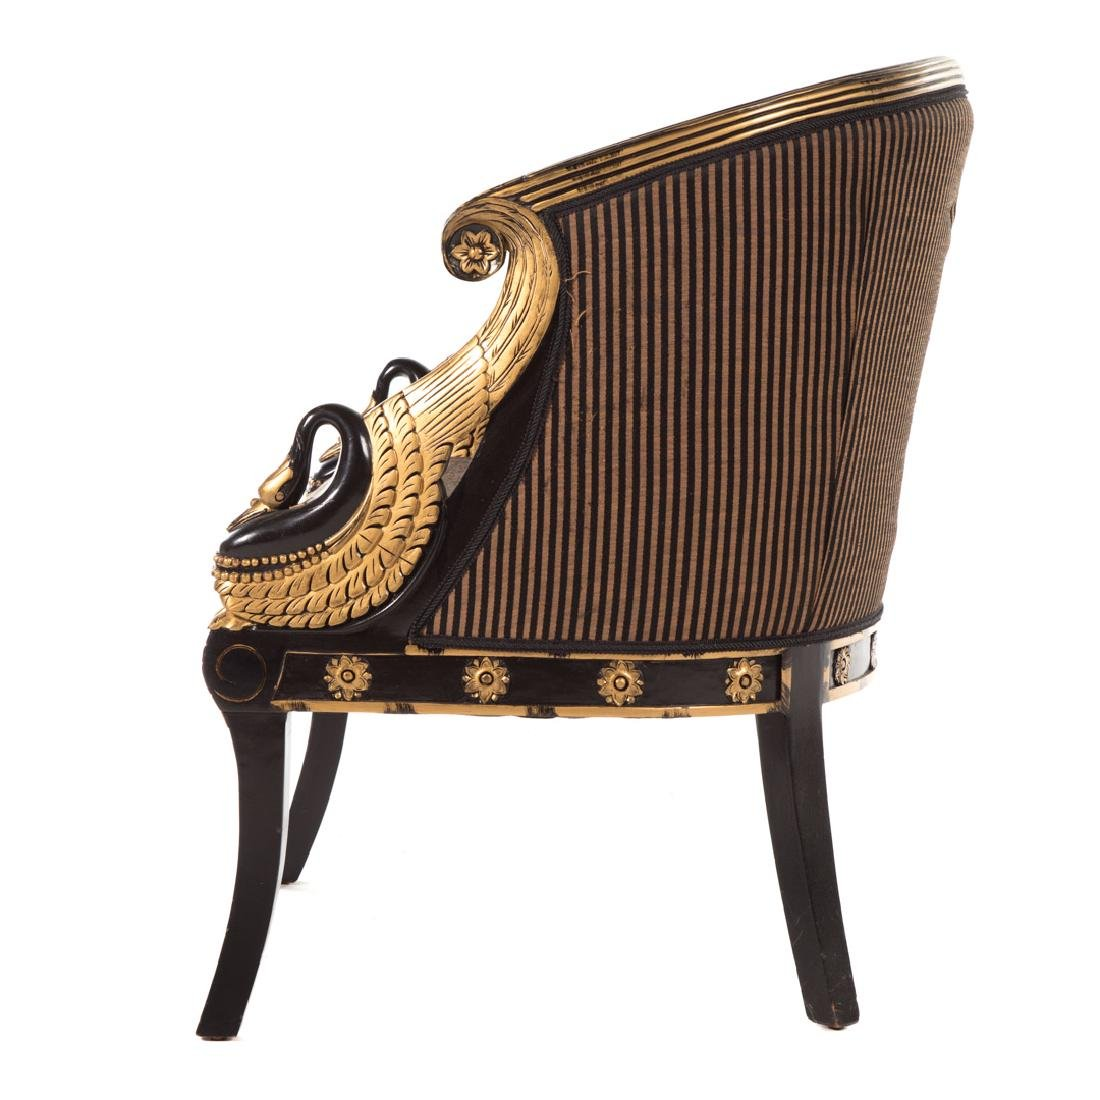 Empire style partial gilt upholstered bergere - 2